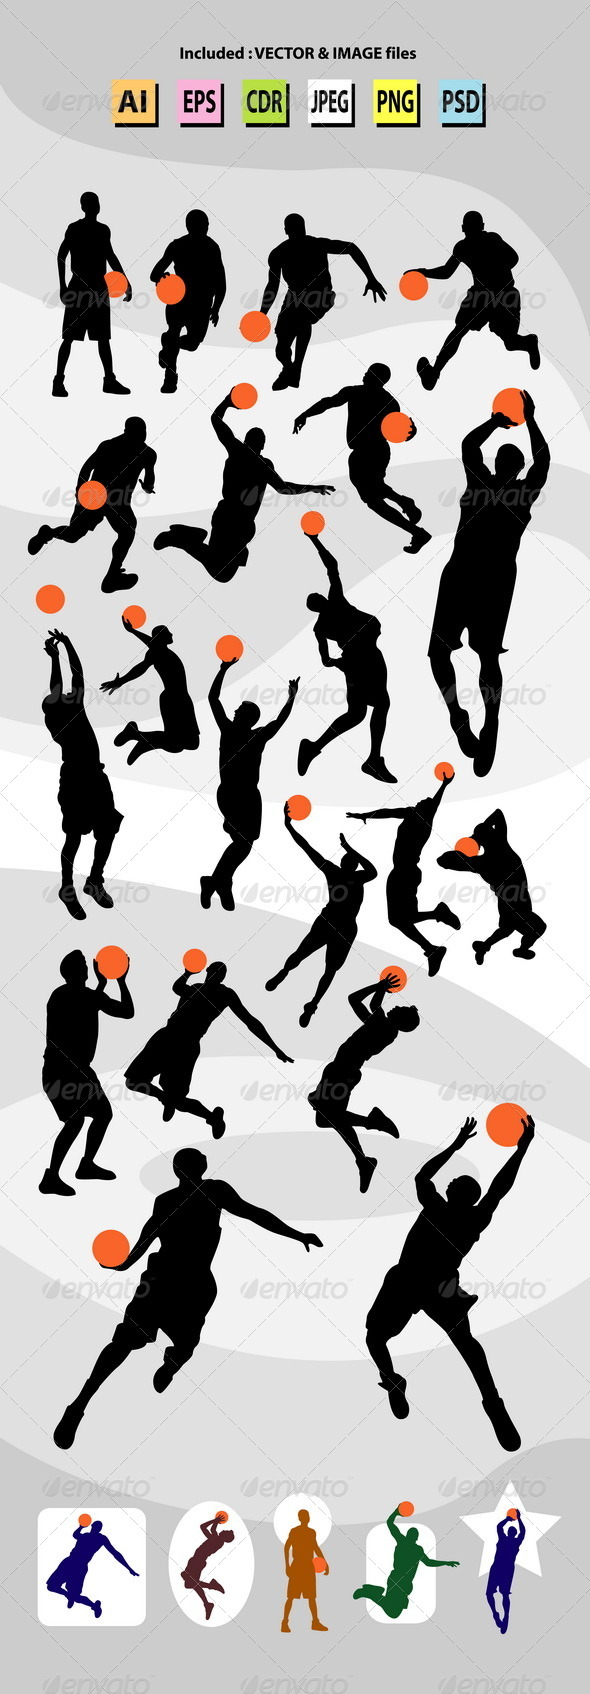 GraphicRiver Male Basketball Silhouettes 7864951